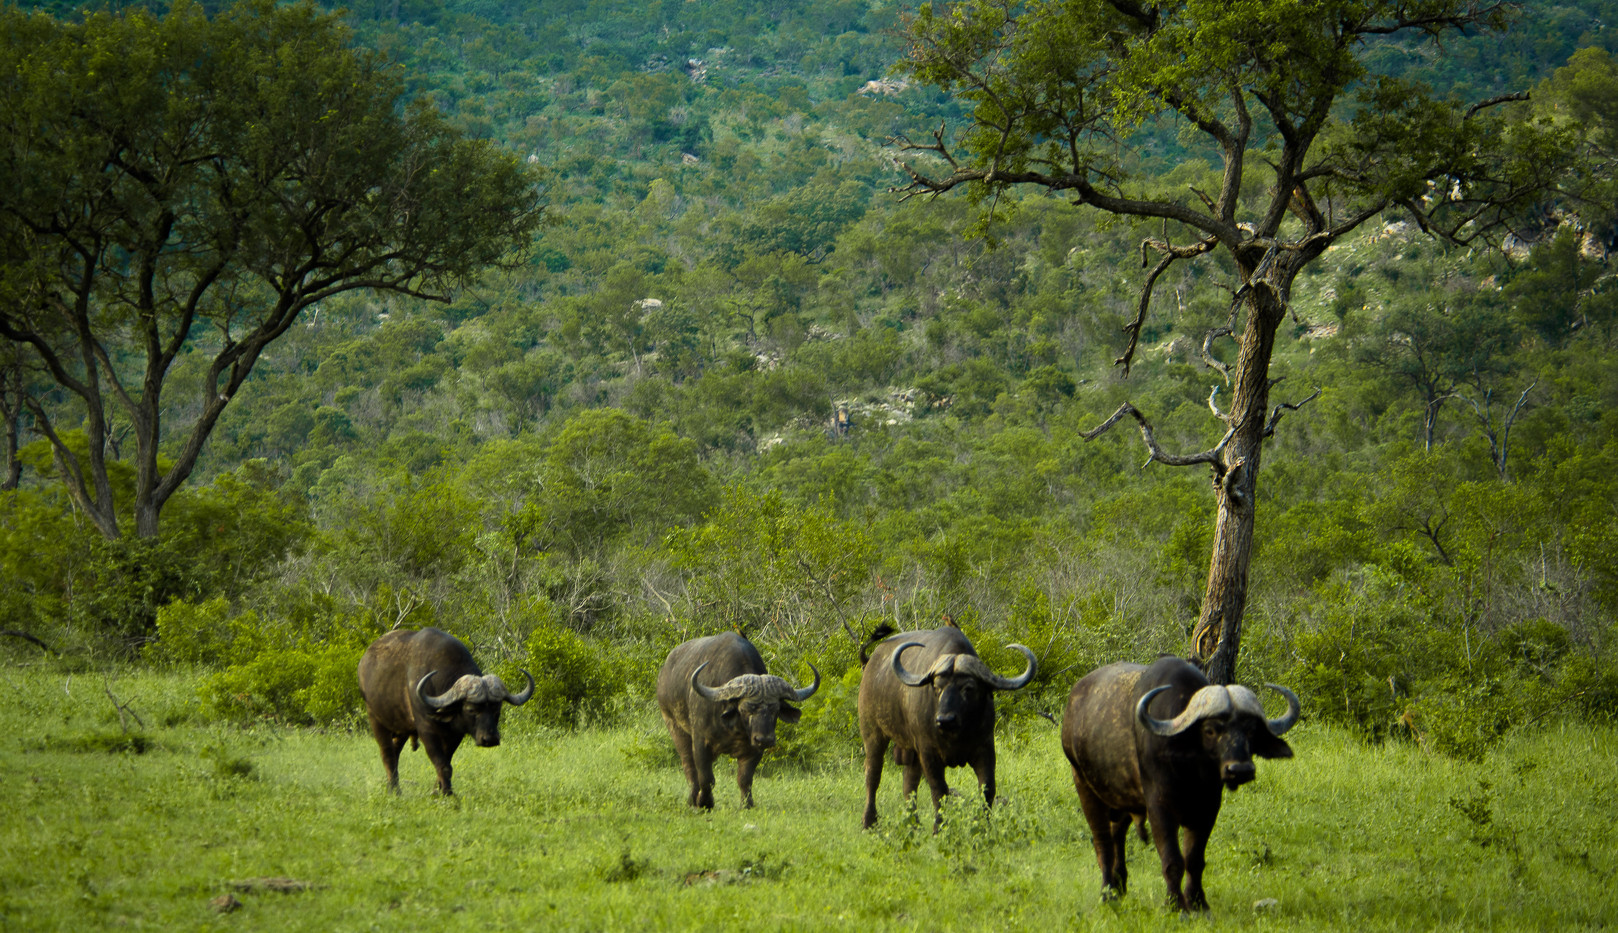 African Buffalo on the move